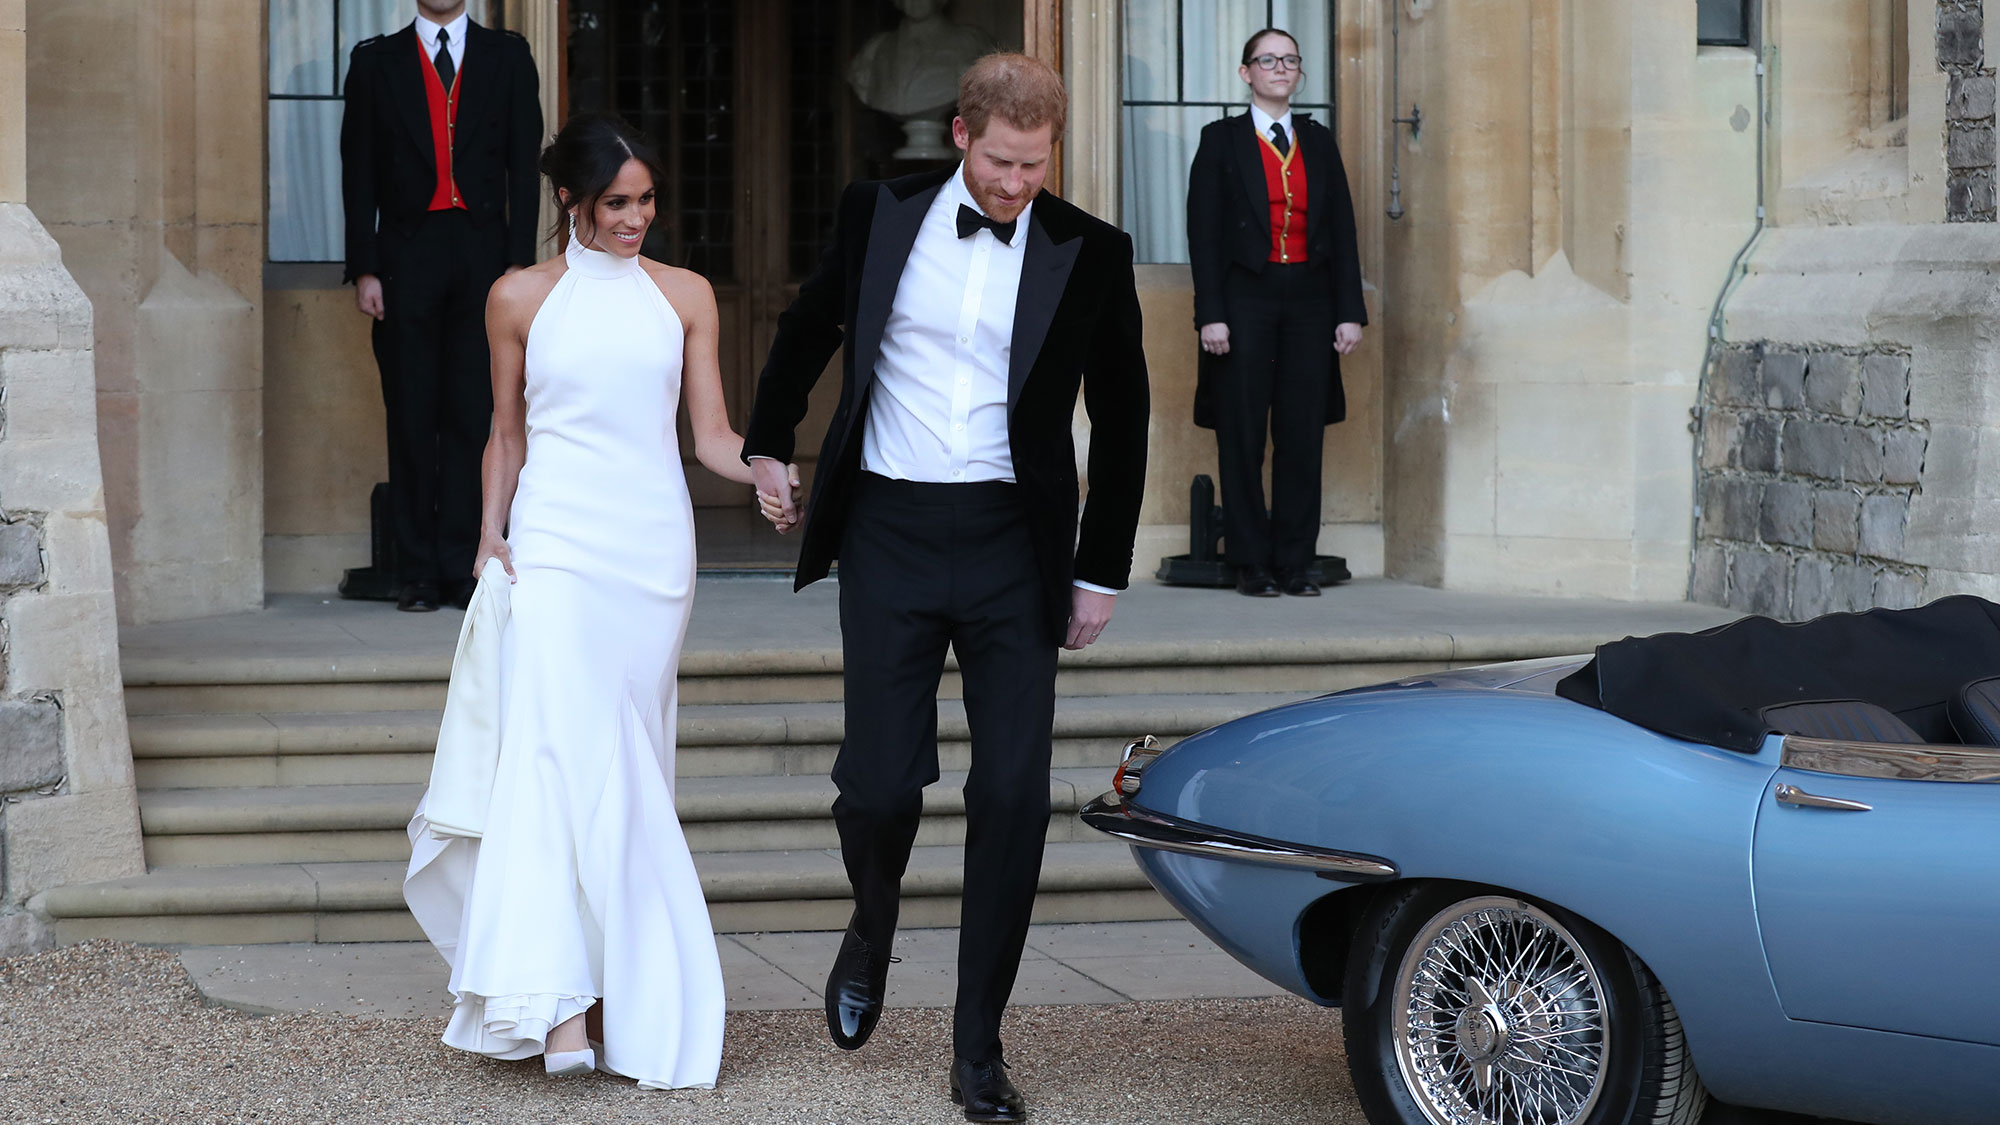 The Queen made this special exception for Prince Harry at the royal wedding meghanseconddress2